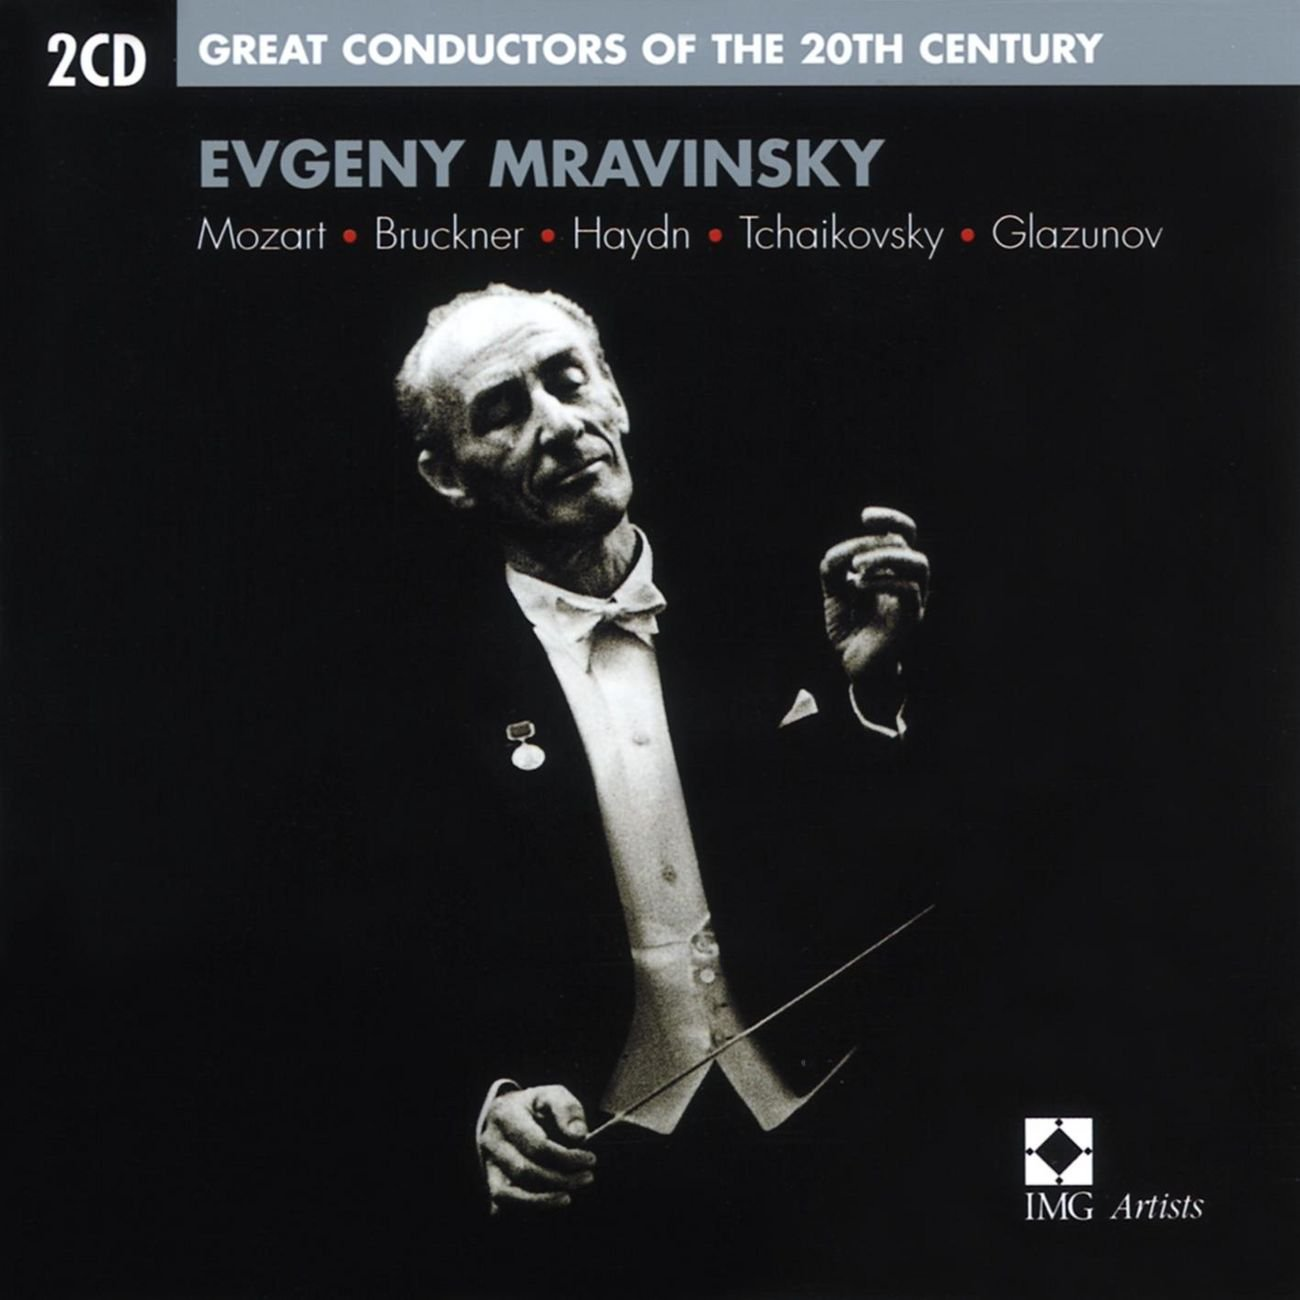 Great Conductors of the 20th Century by EMI Classics